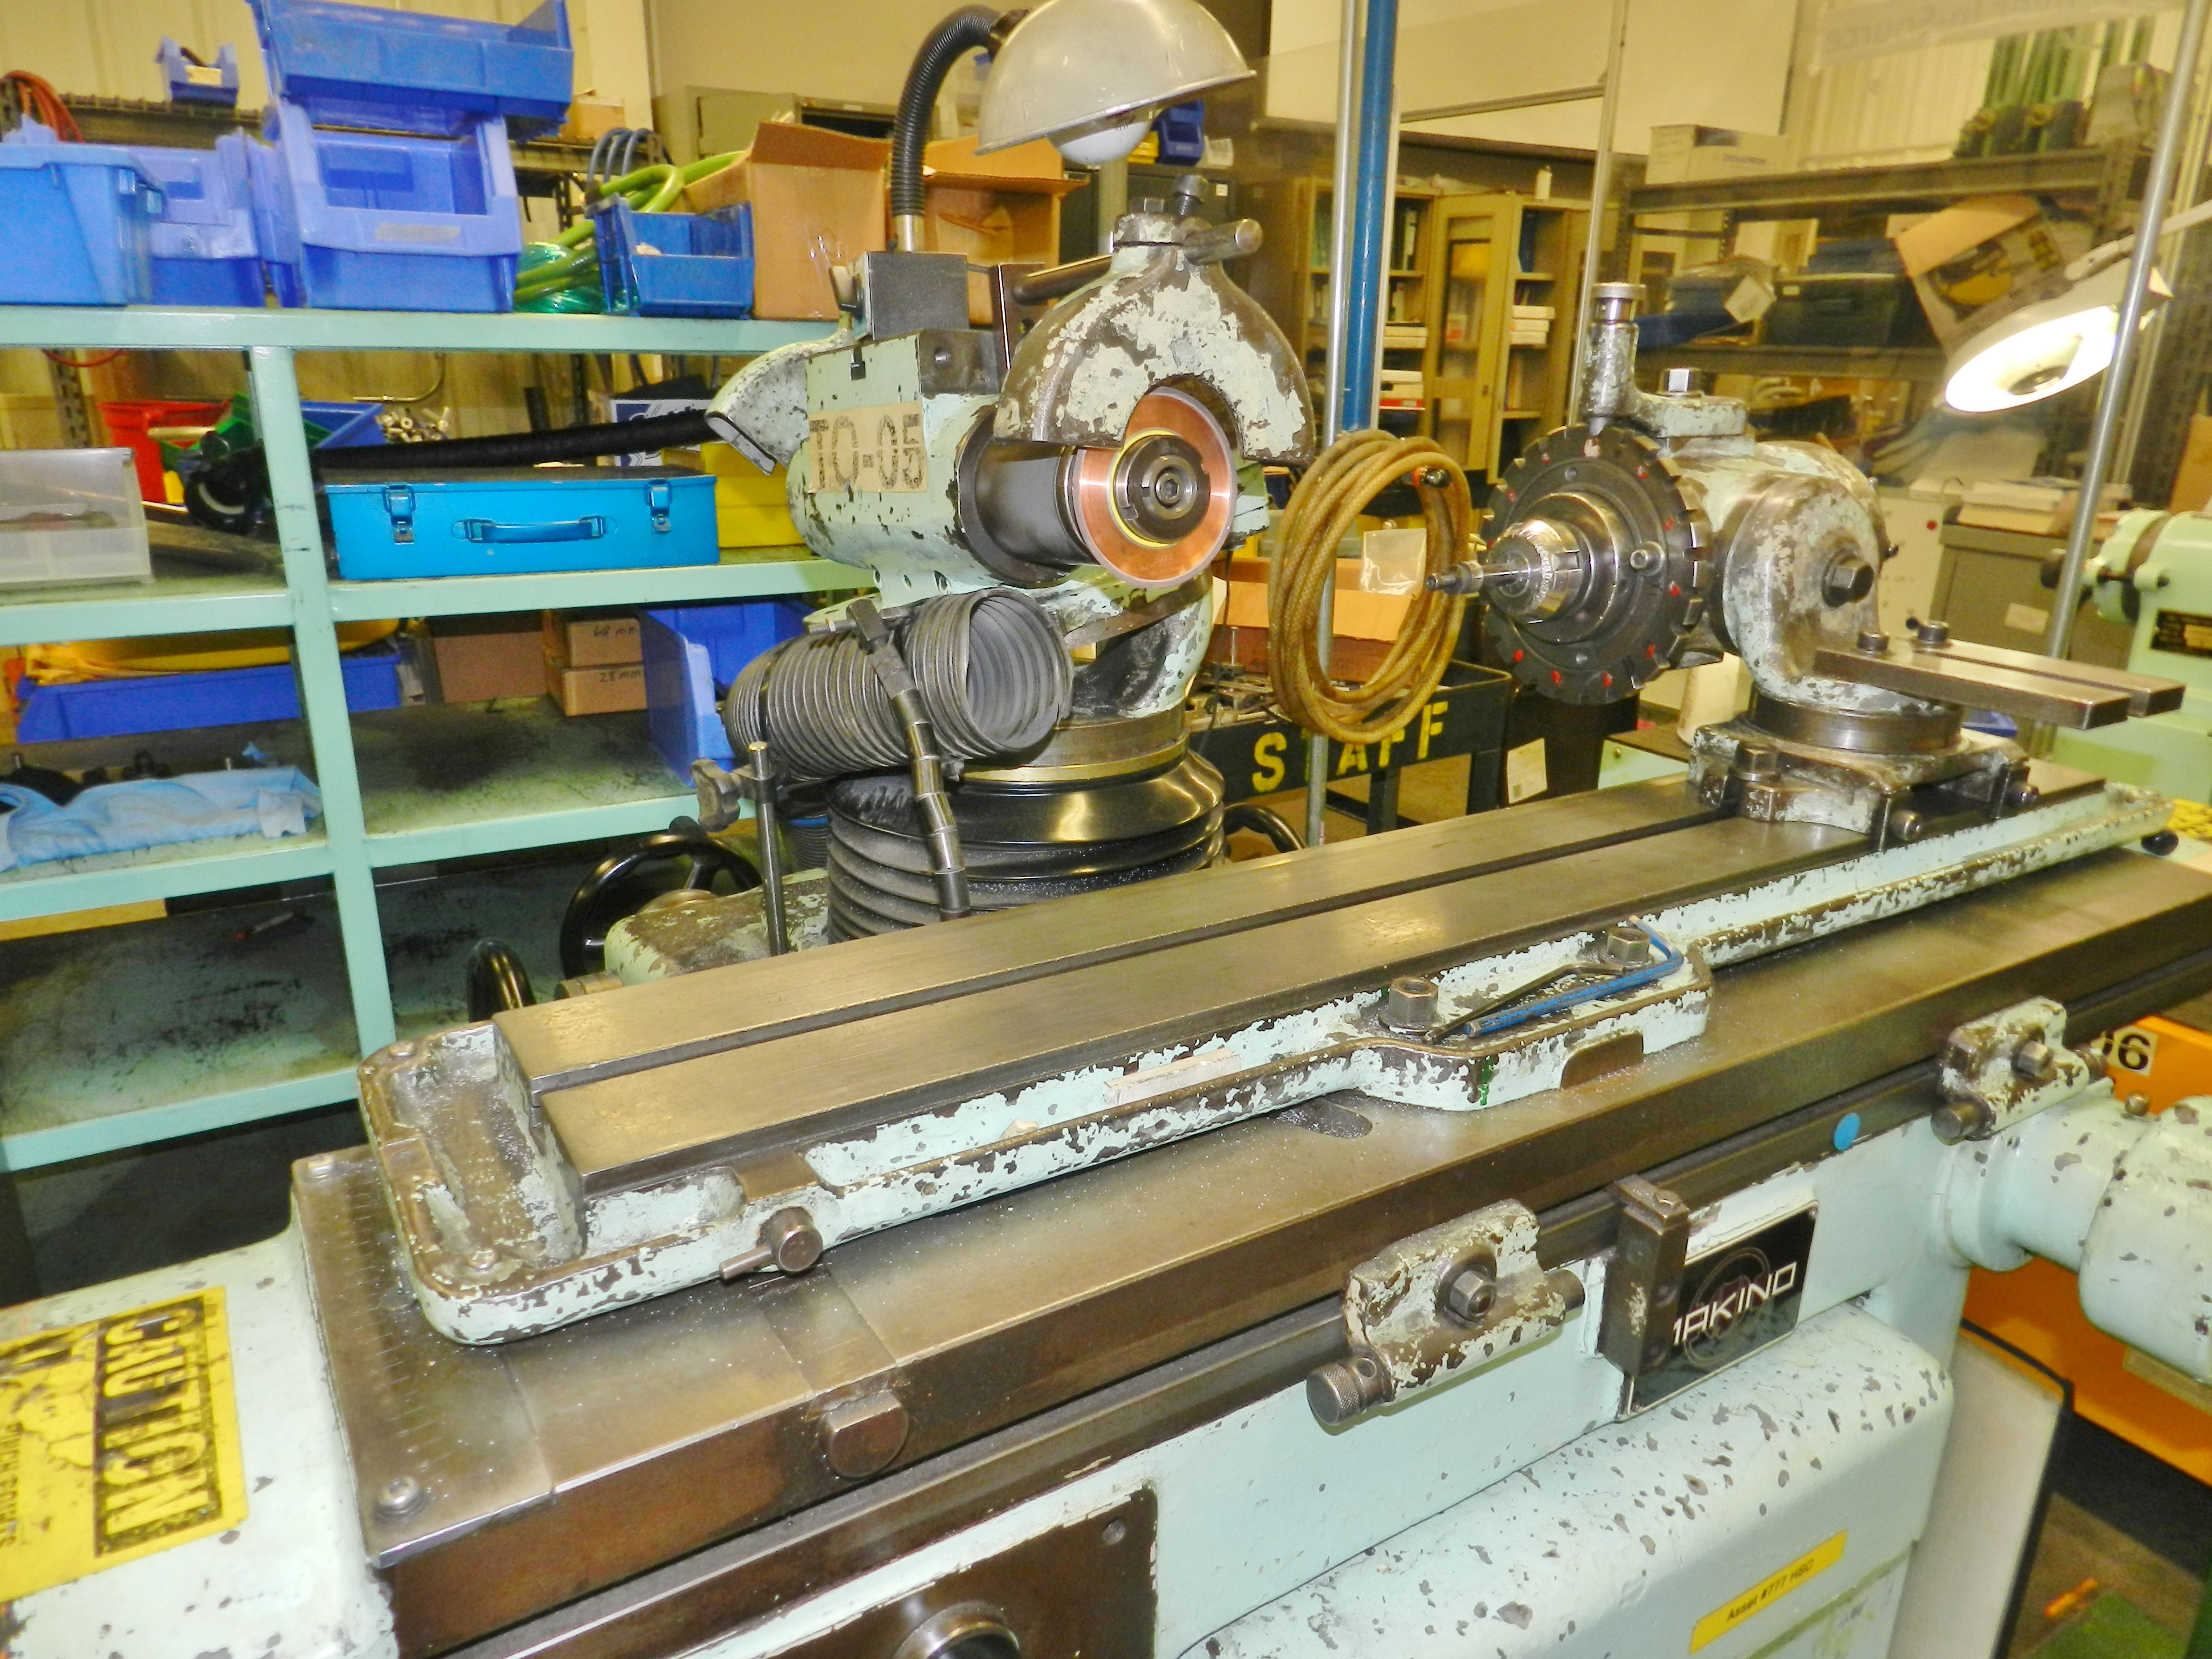 Lot 53 - Makino C-40 Universal Tool & Cutter Grinder